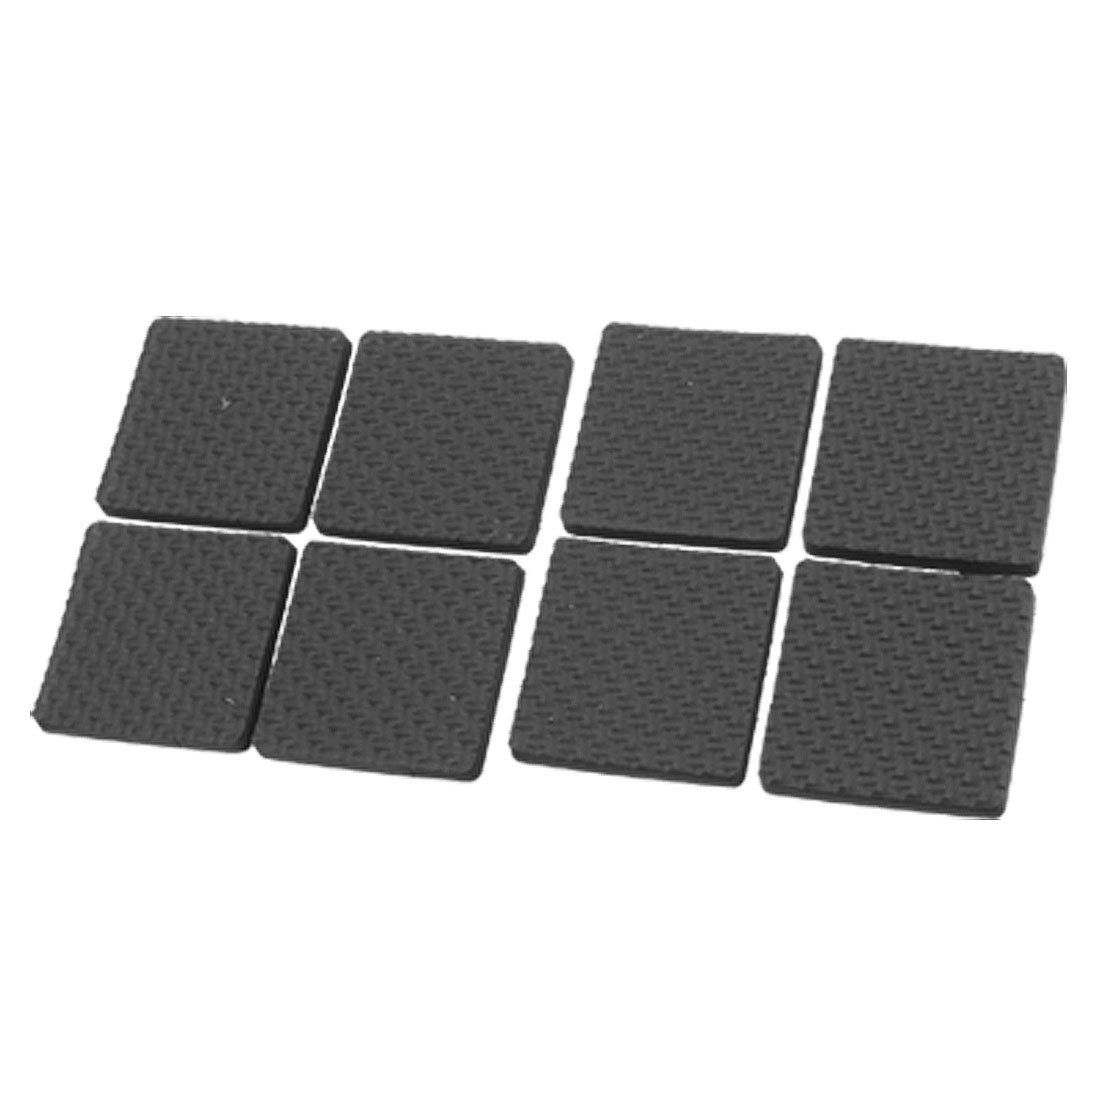 FLST Black Protective Furniture Table Chair Foot Square PadFLST Black Protective Furniture Table Chair Foot Square Pad